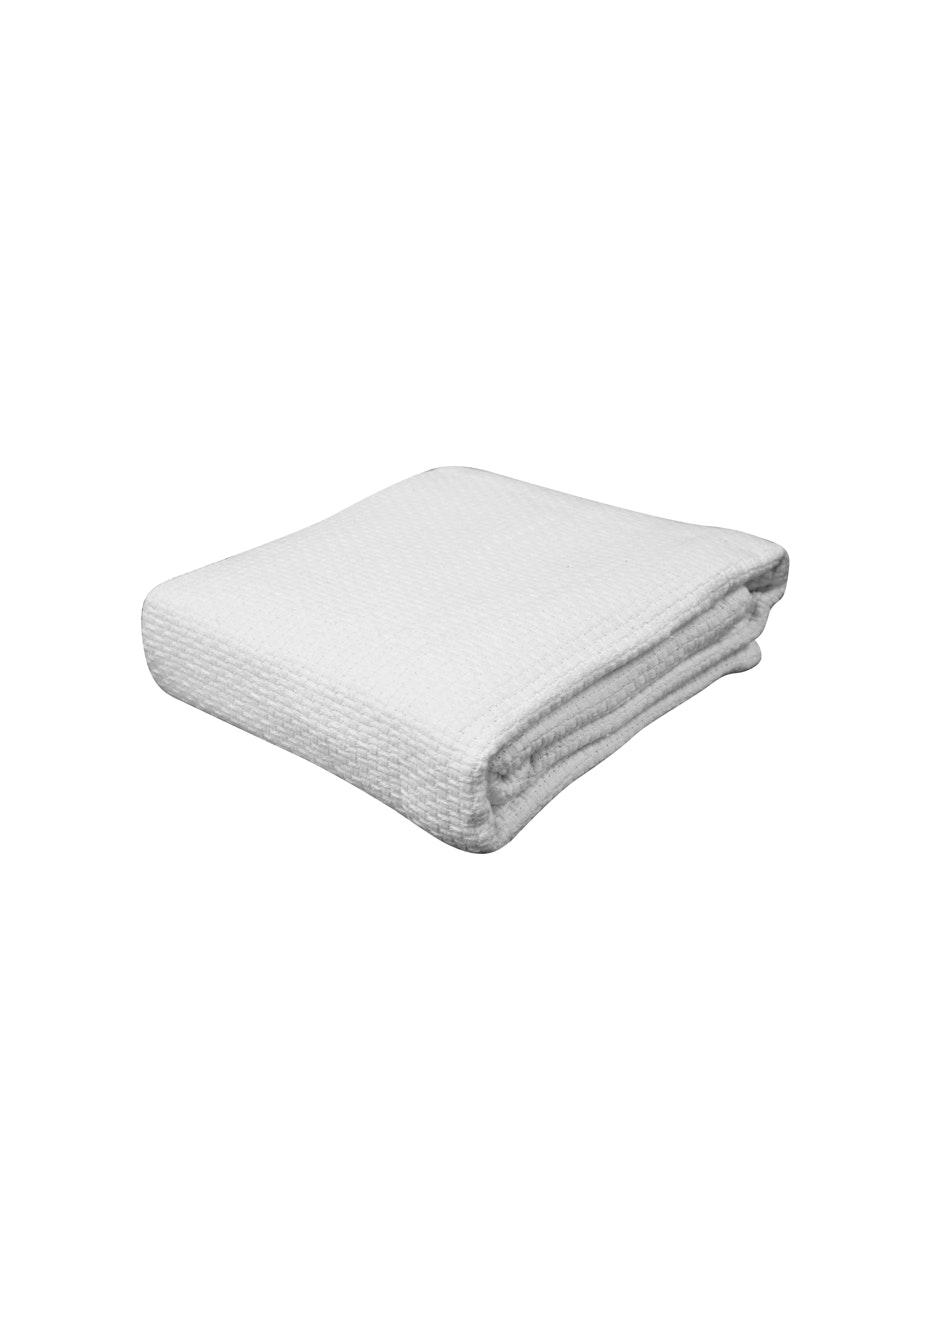 Pebble Weave Cotton Blanket - White - Cot